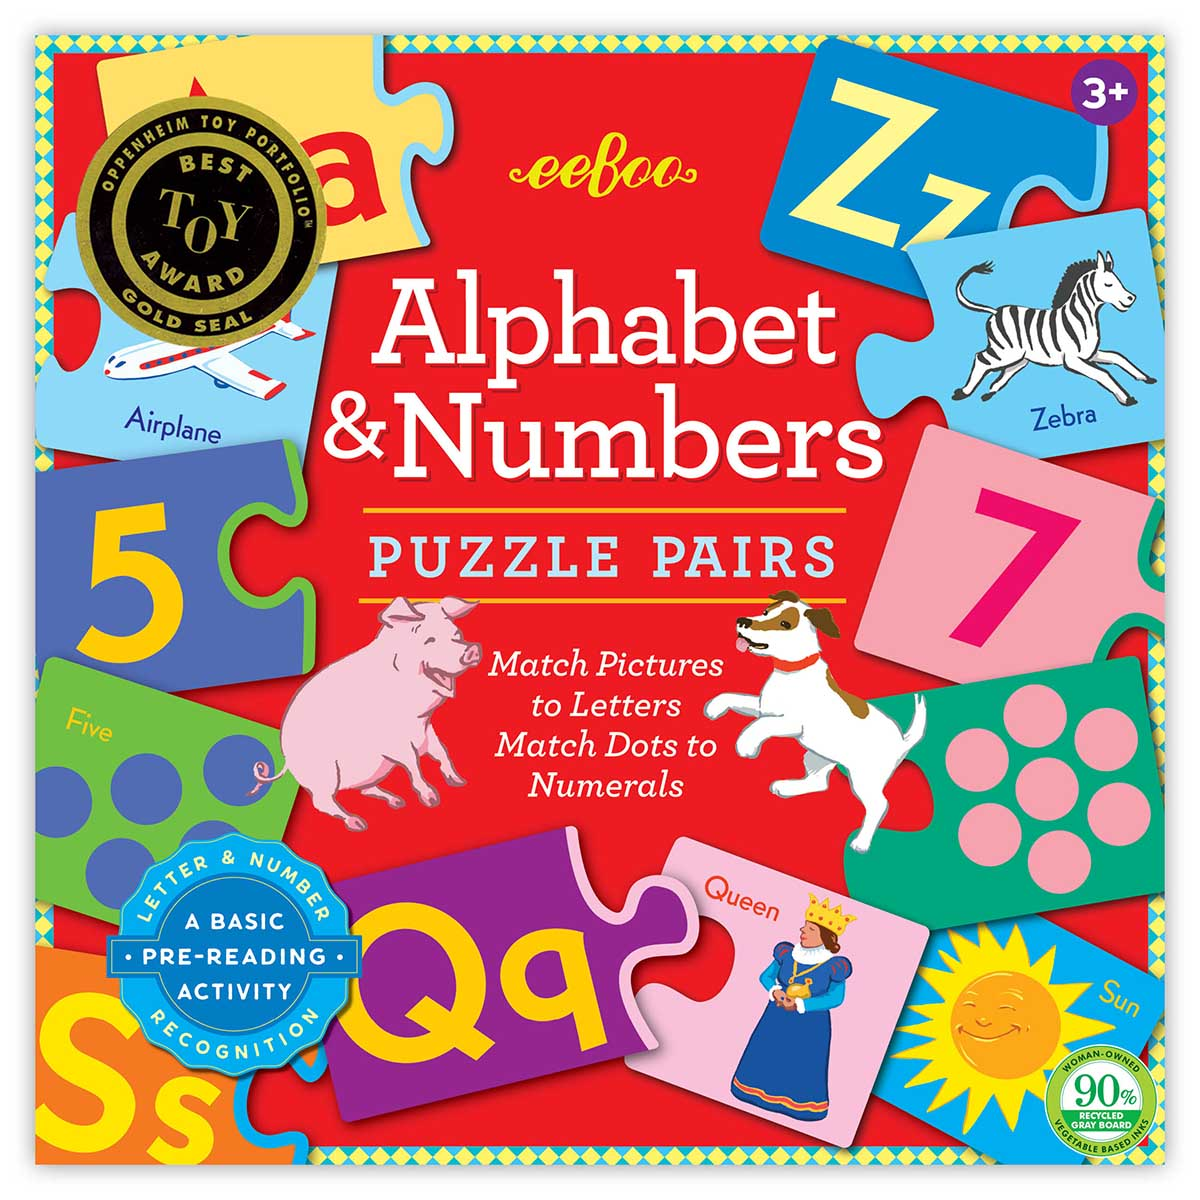 Alphabet & Numbers Educational Children's Puzzles